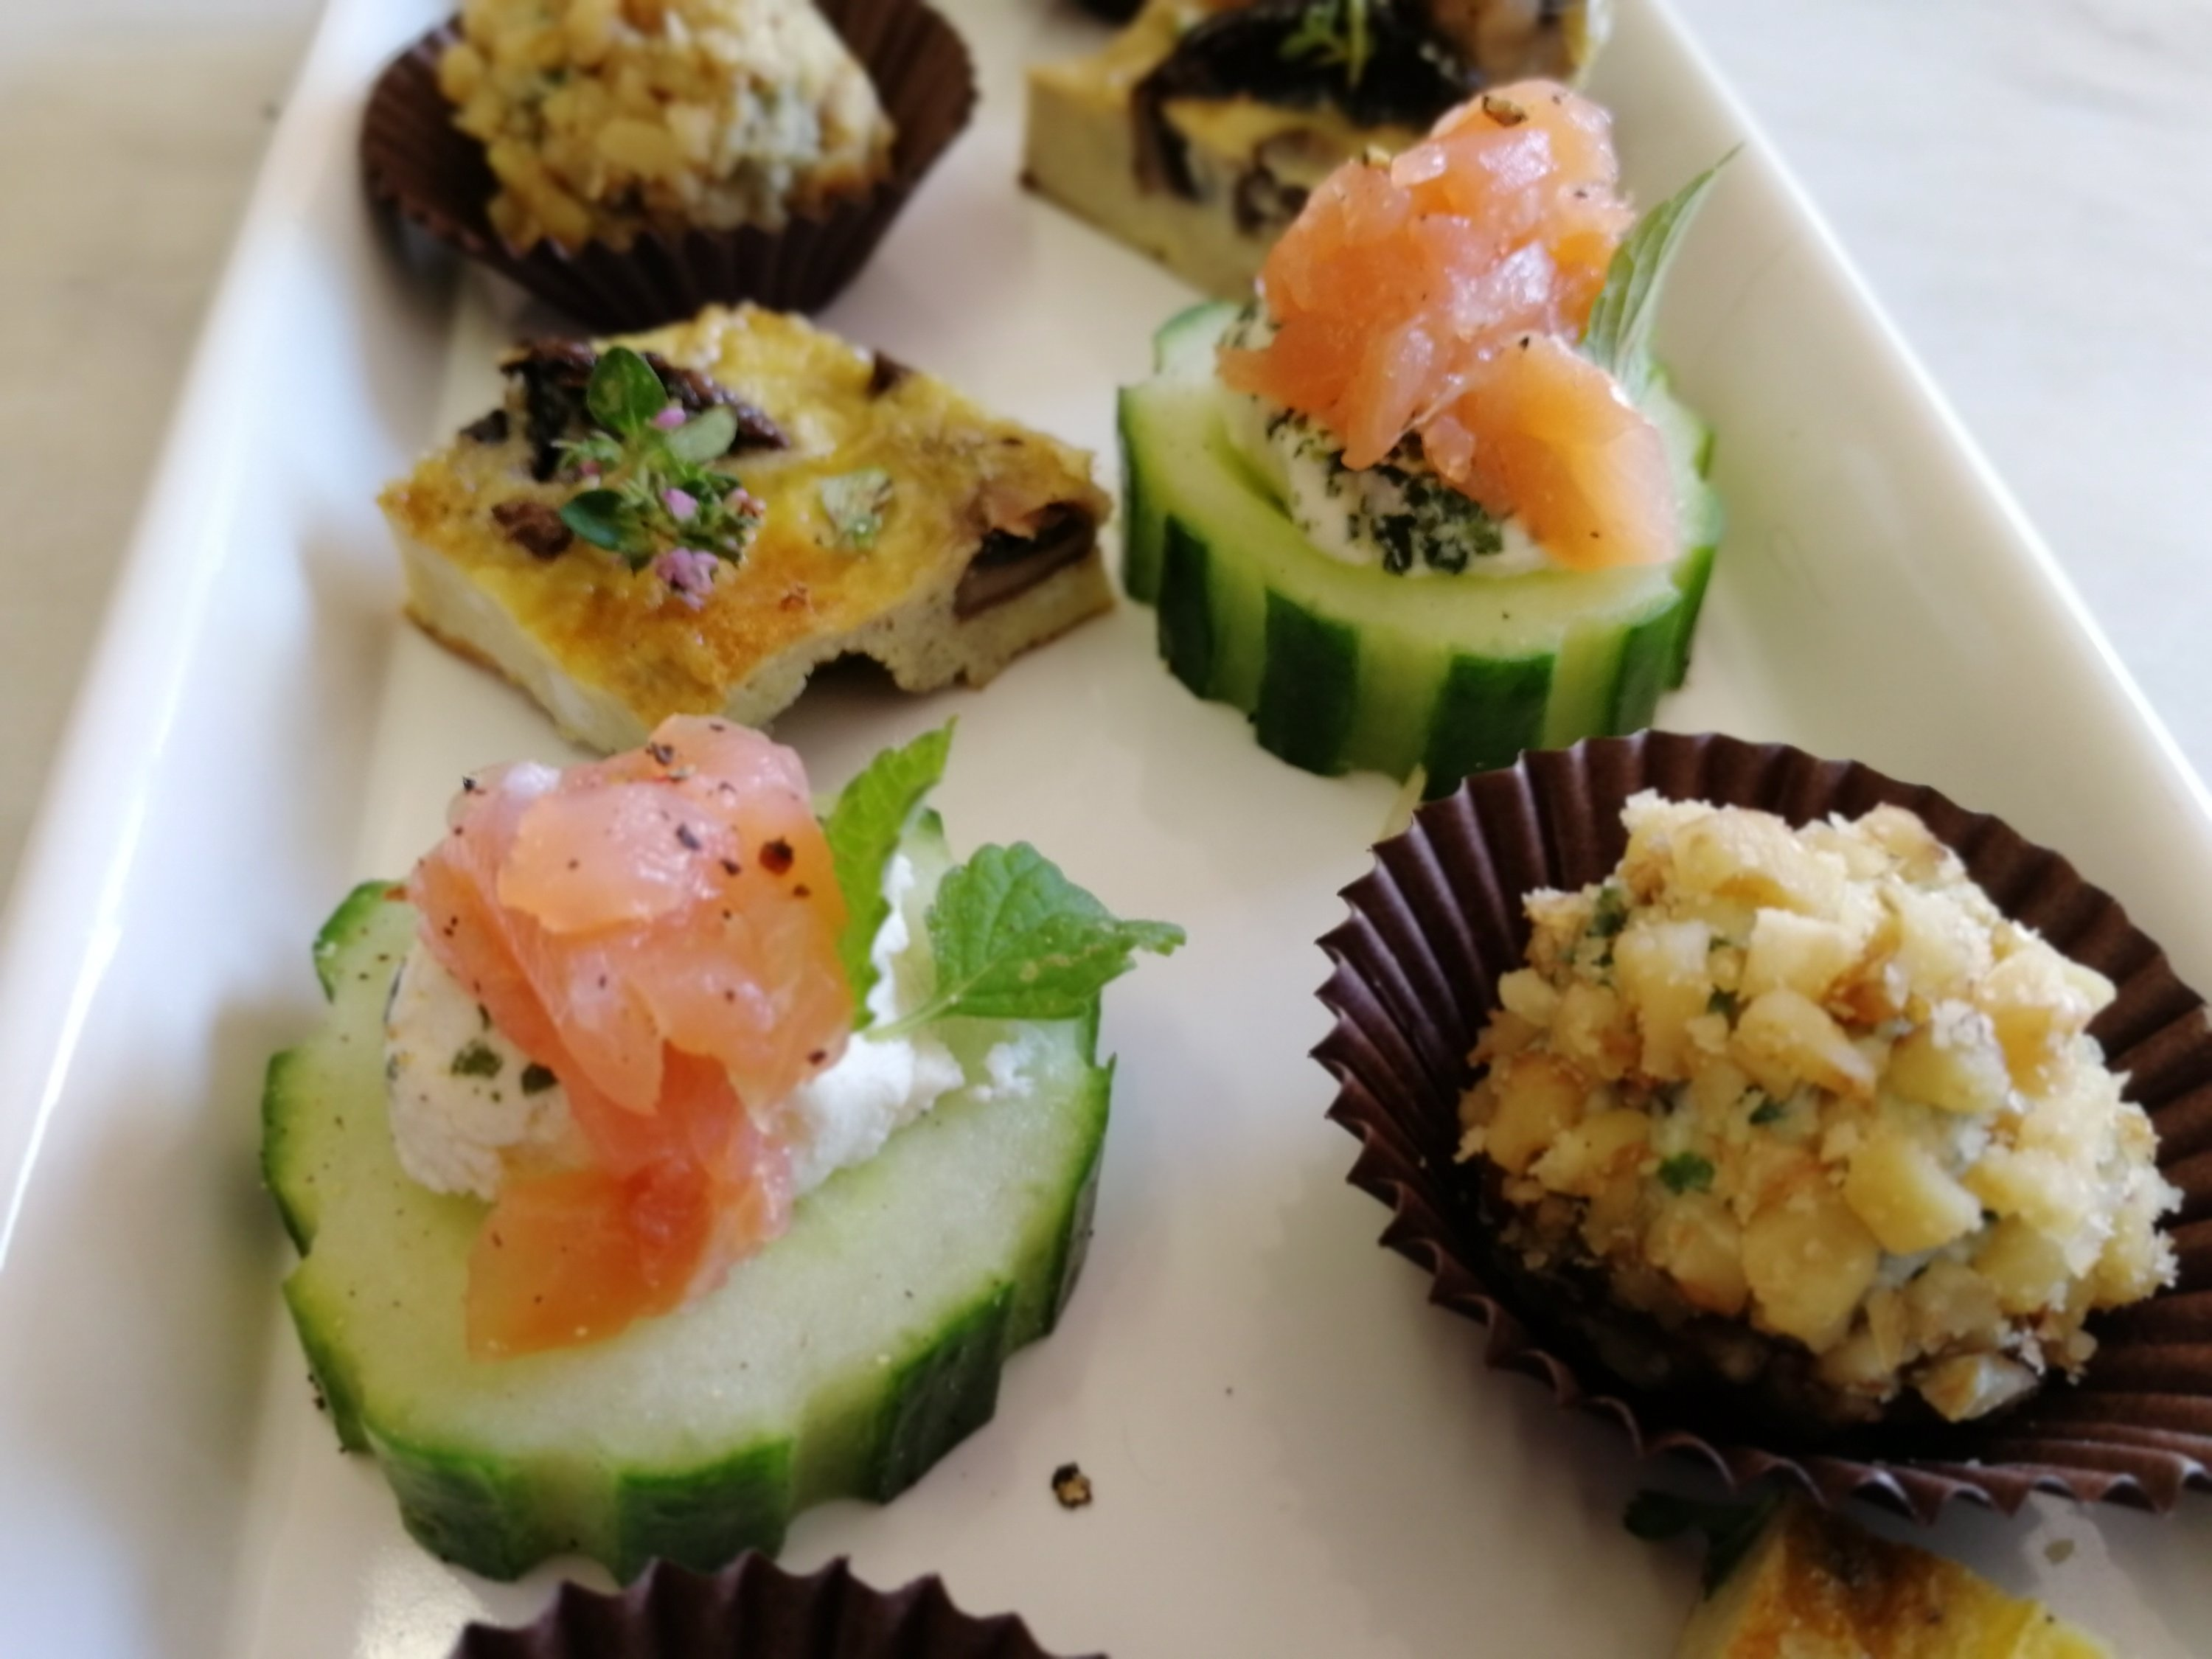 Nibbles with drinks, gluten free, Vegetarian, made to order, fresh food